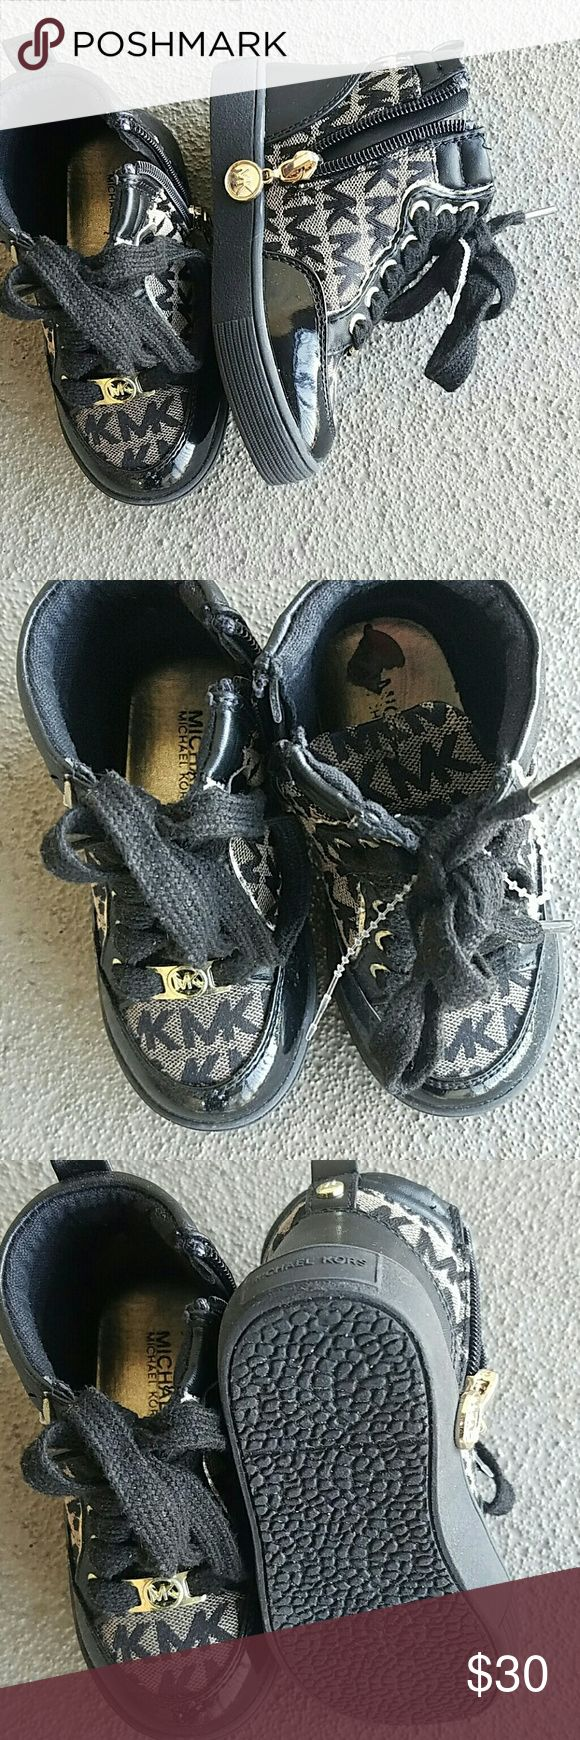 Michael Kors Toddler High Top Sneakers  Brand New Michael Kors Toddler High top sneakers Brand New. Side zipper for easy pull on. These are super cute. NWOT Michael Kors Shoes Sneakers